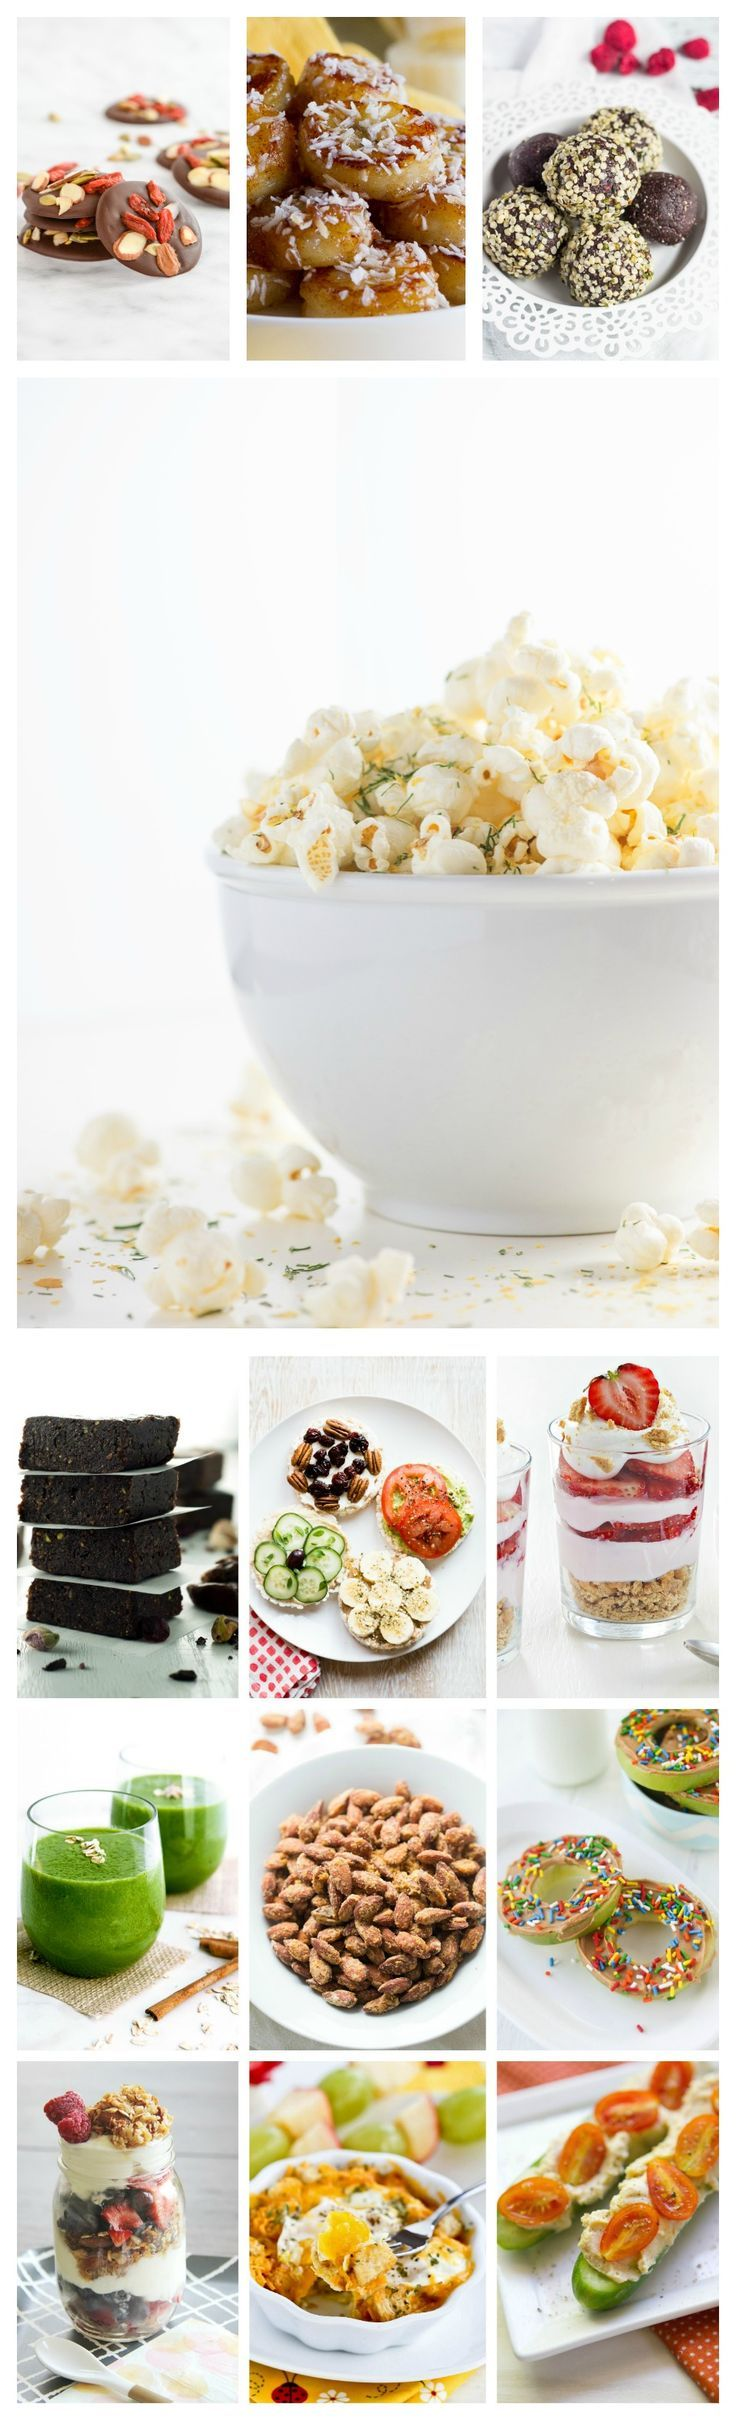 42 Brand new and original snack recipes prepared in under 5 minutes. No processed ingredients! Just healthy ways to enjoy real food. @Ilona's Passion